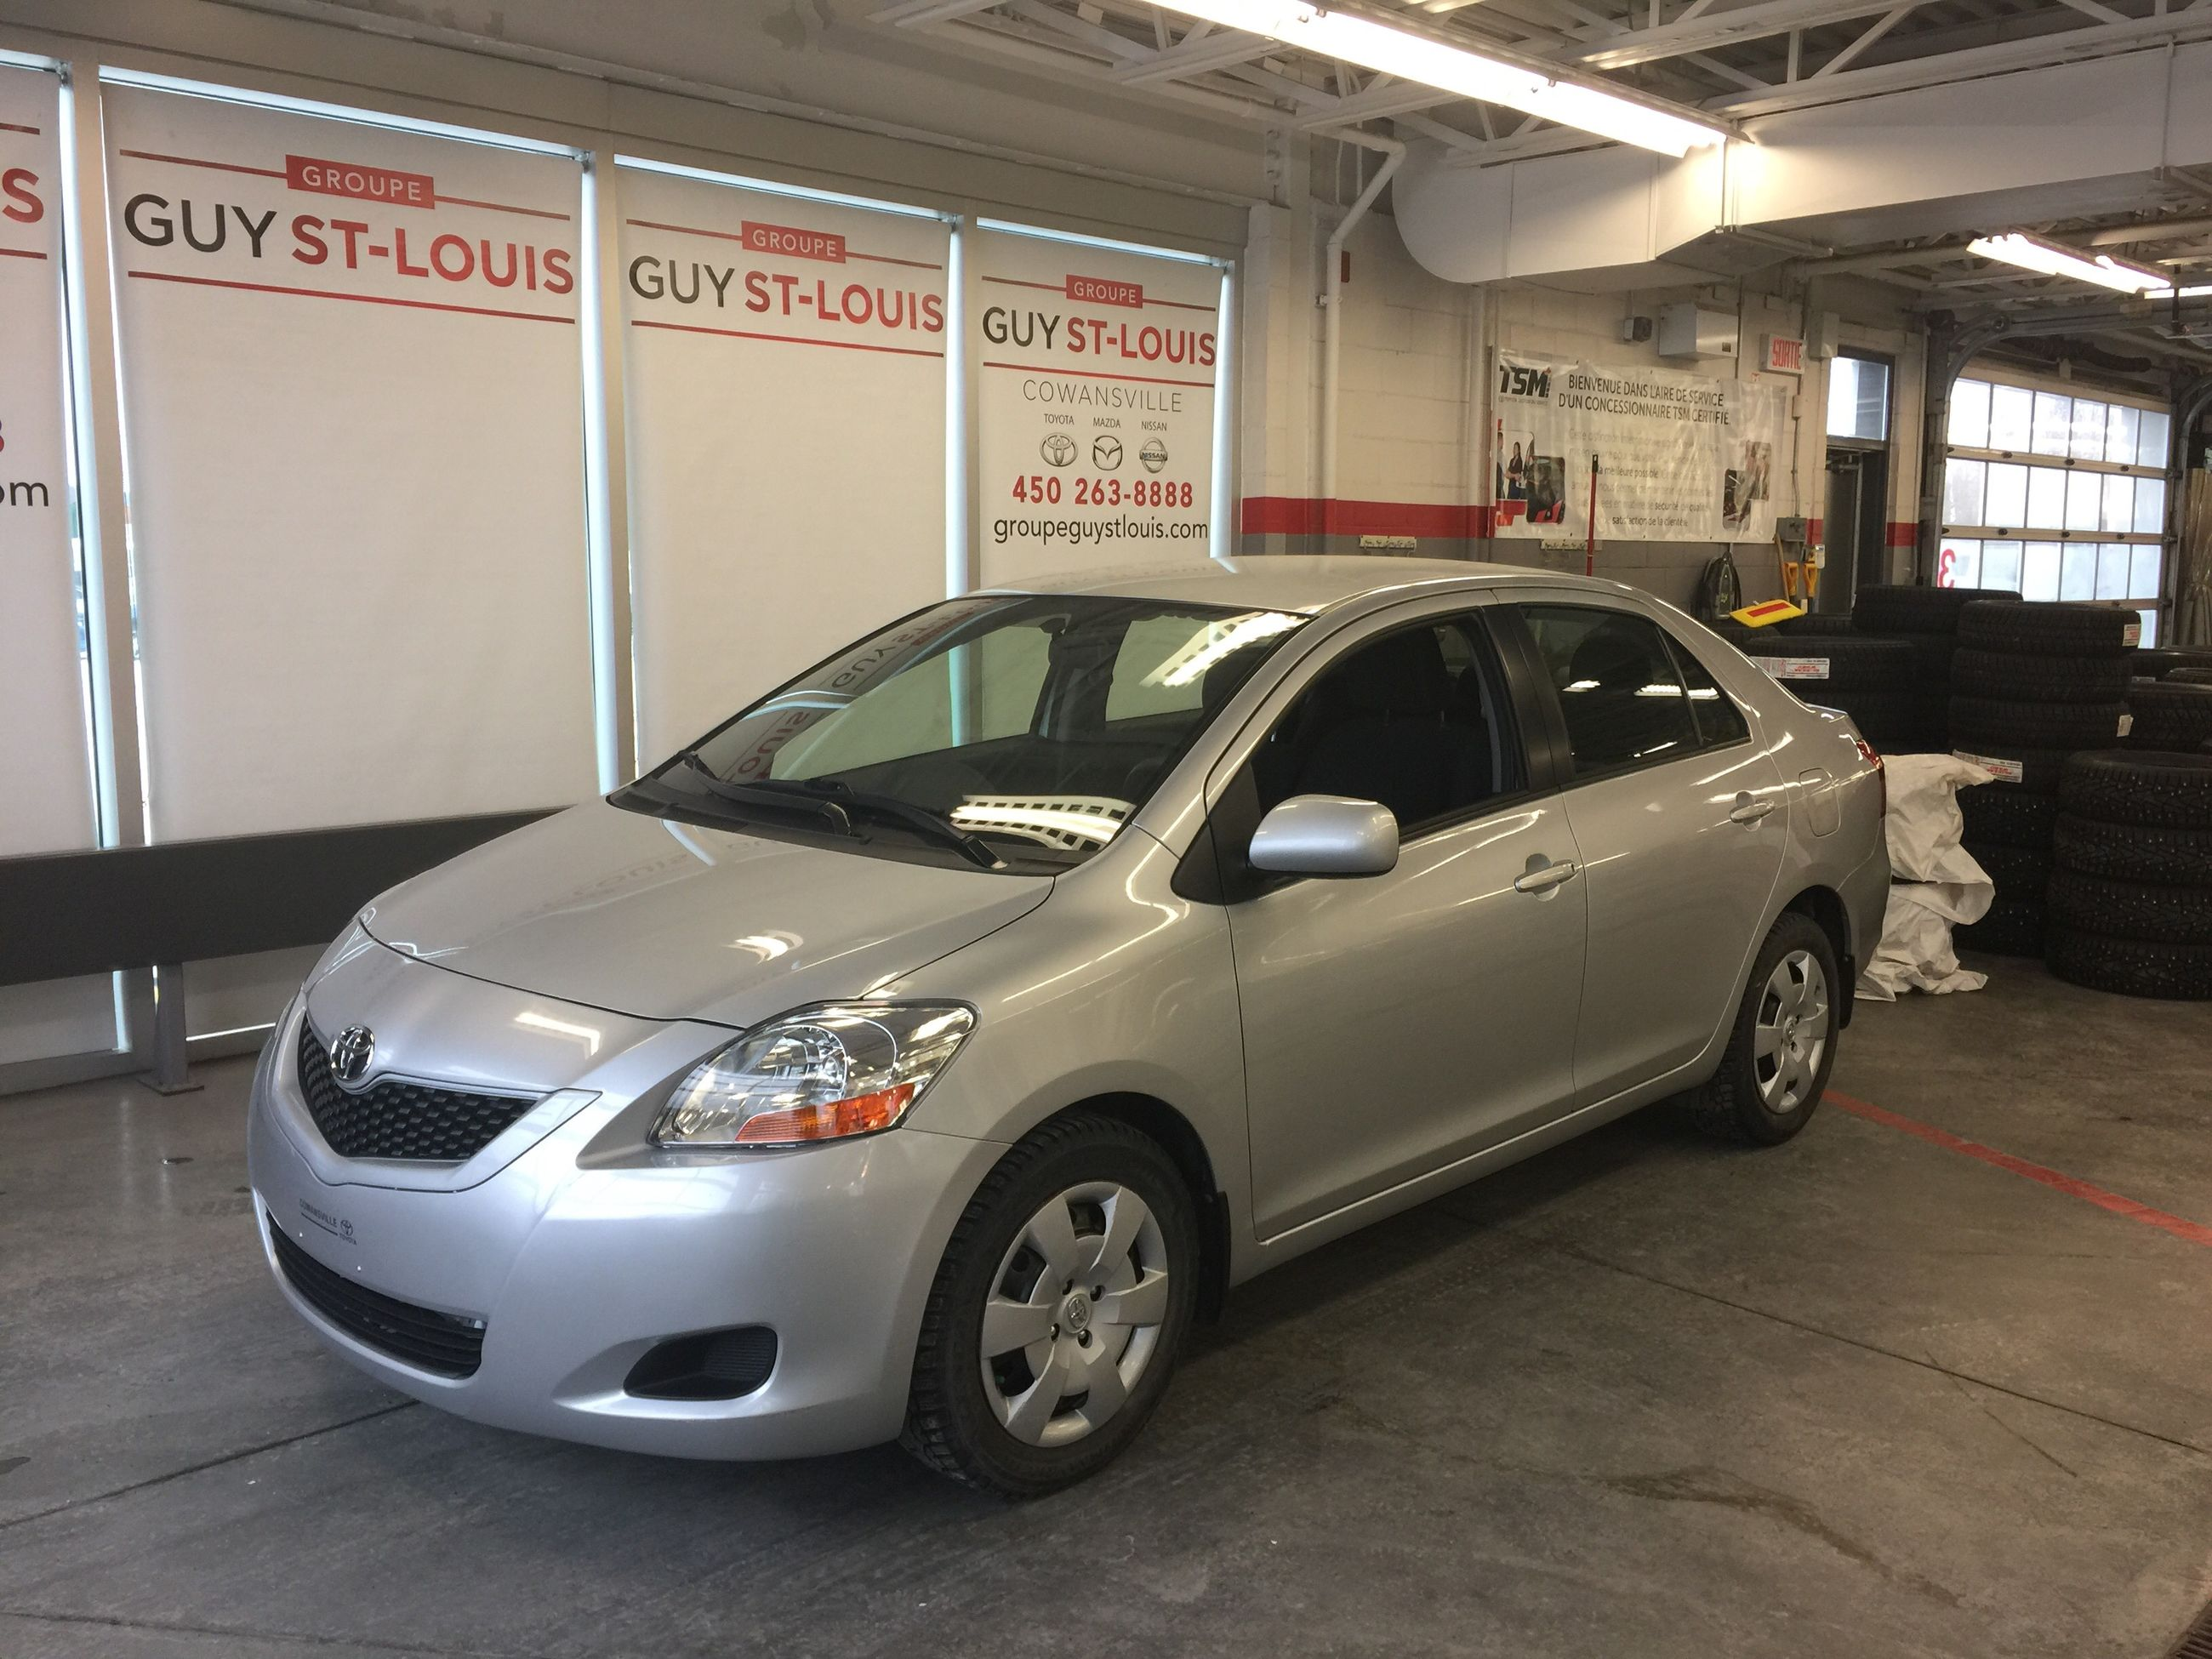 Occasion Cowansville Pre Owned 2011 Toyota Yaris Full Auto A C For Sale In Cowanville